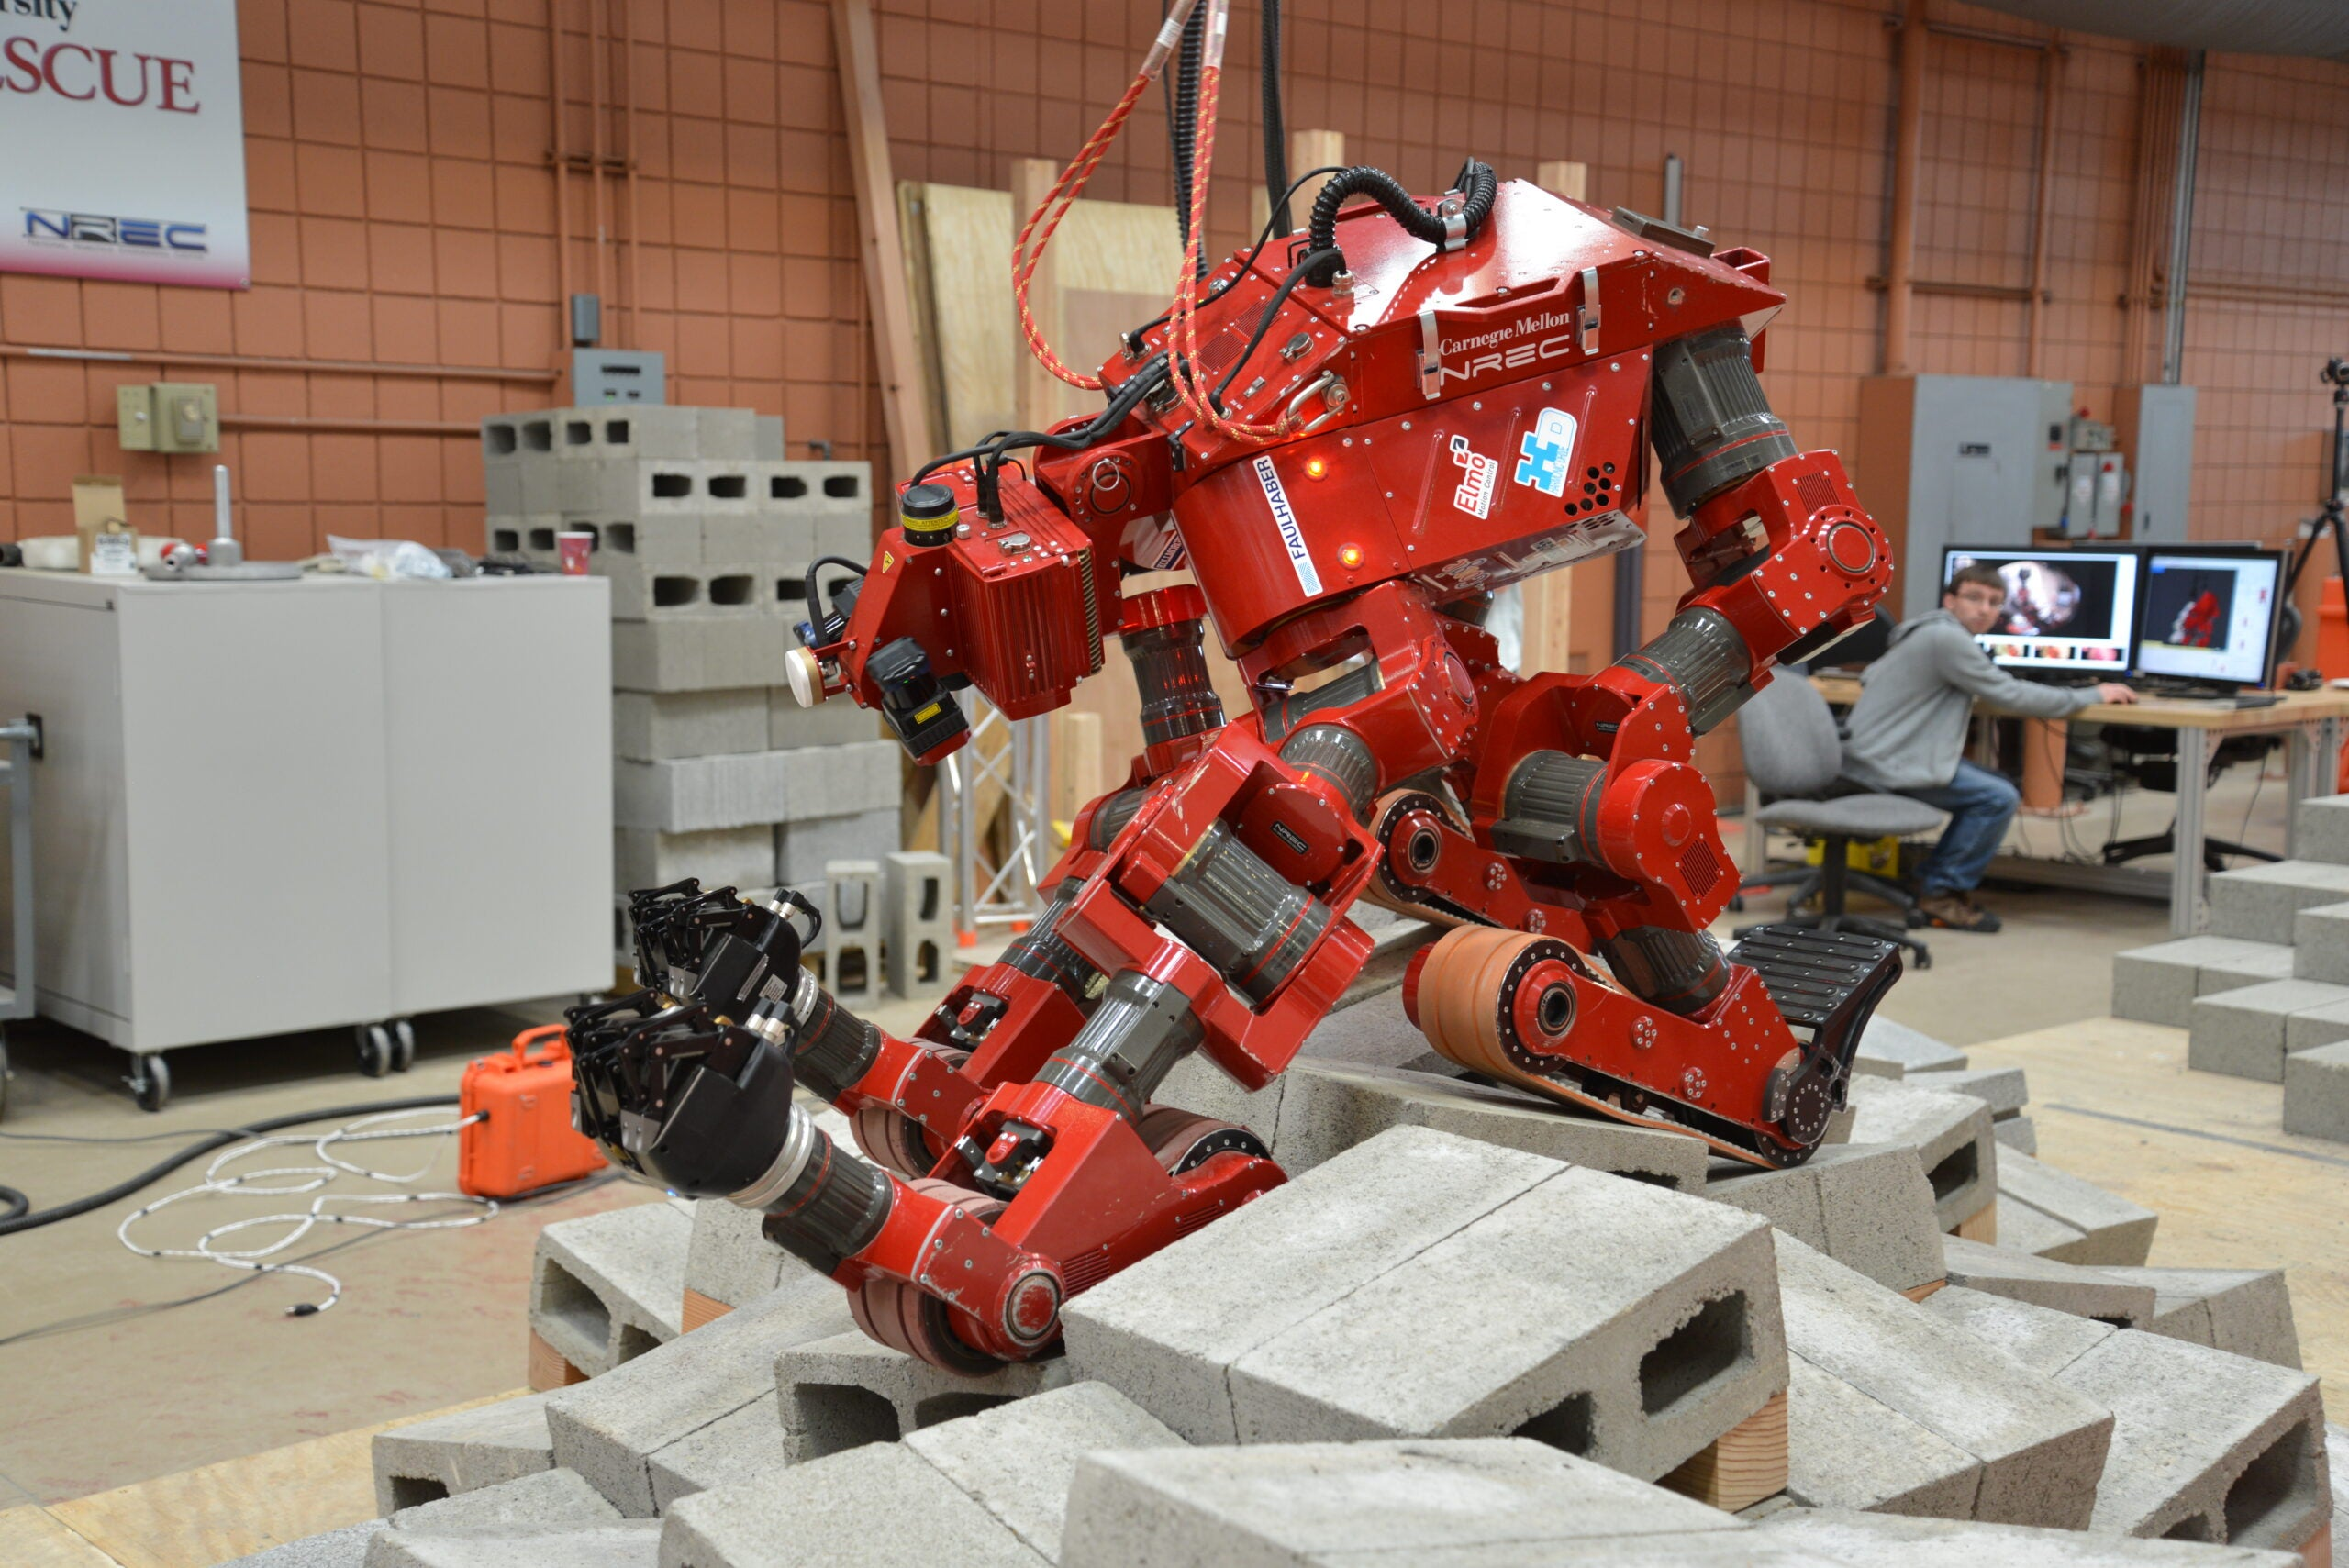 Death By Slapstick: Will The DARPA Robotics Challenge's Final, Grueling Stage Kill The Humanoid Bot?